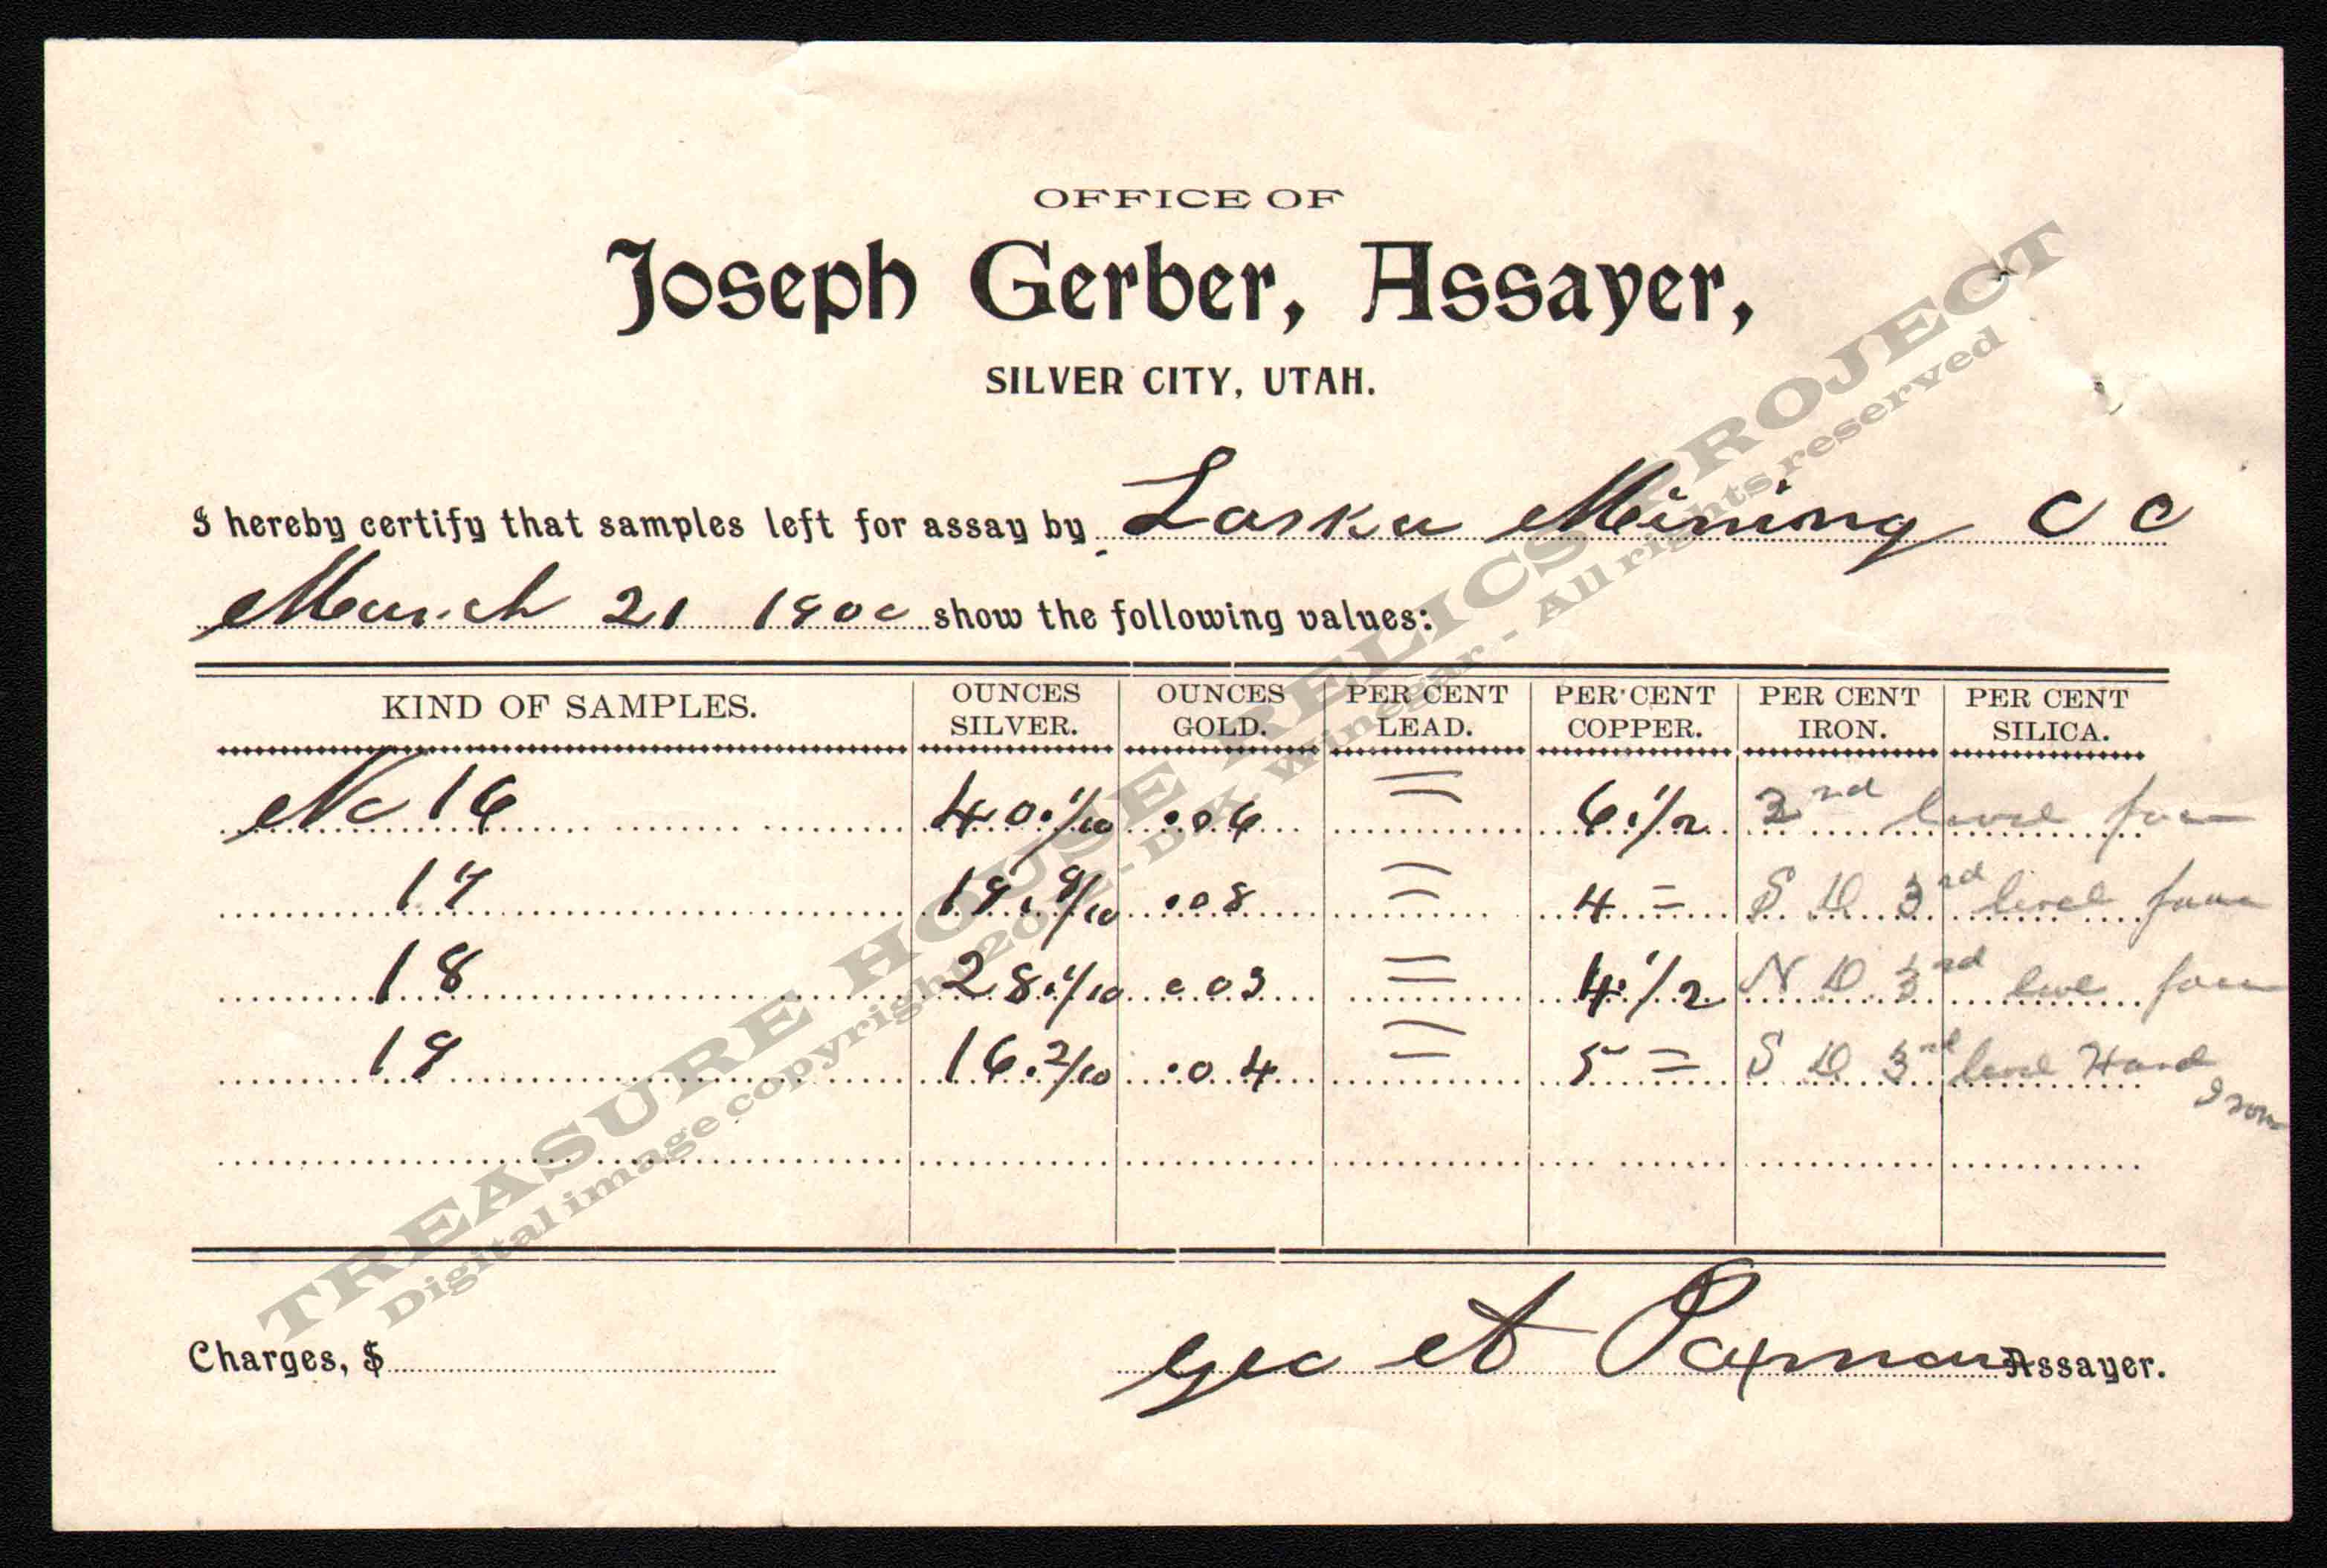 ASSAY_JOSEPH_GERBER_ASSAYER_SILVER_CITY_UTAH_1900_400_EMBOSS.jpg